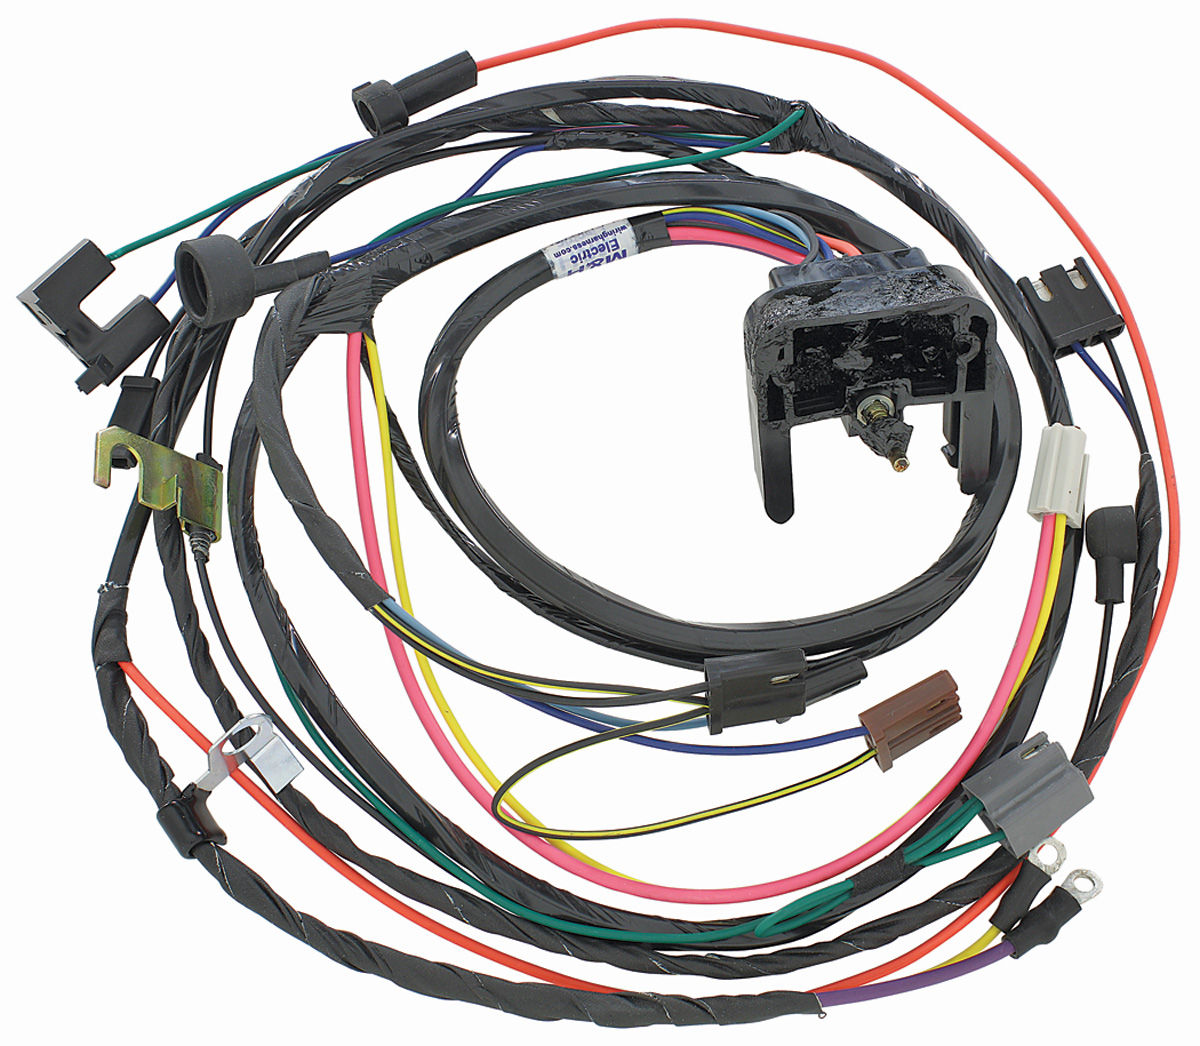 hight resolution of 1972 el camino wiring diagram hei images gallery